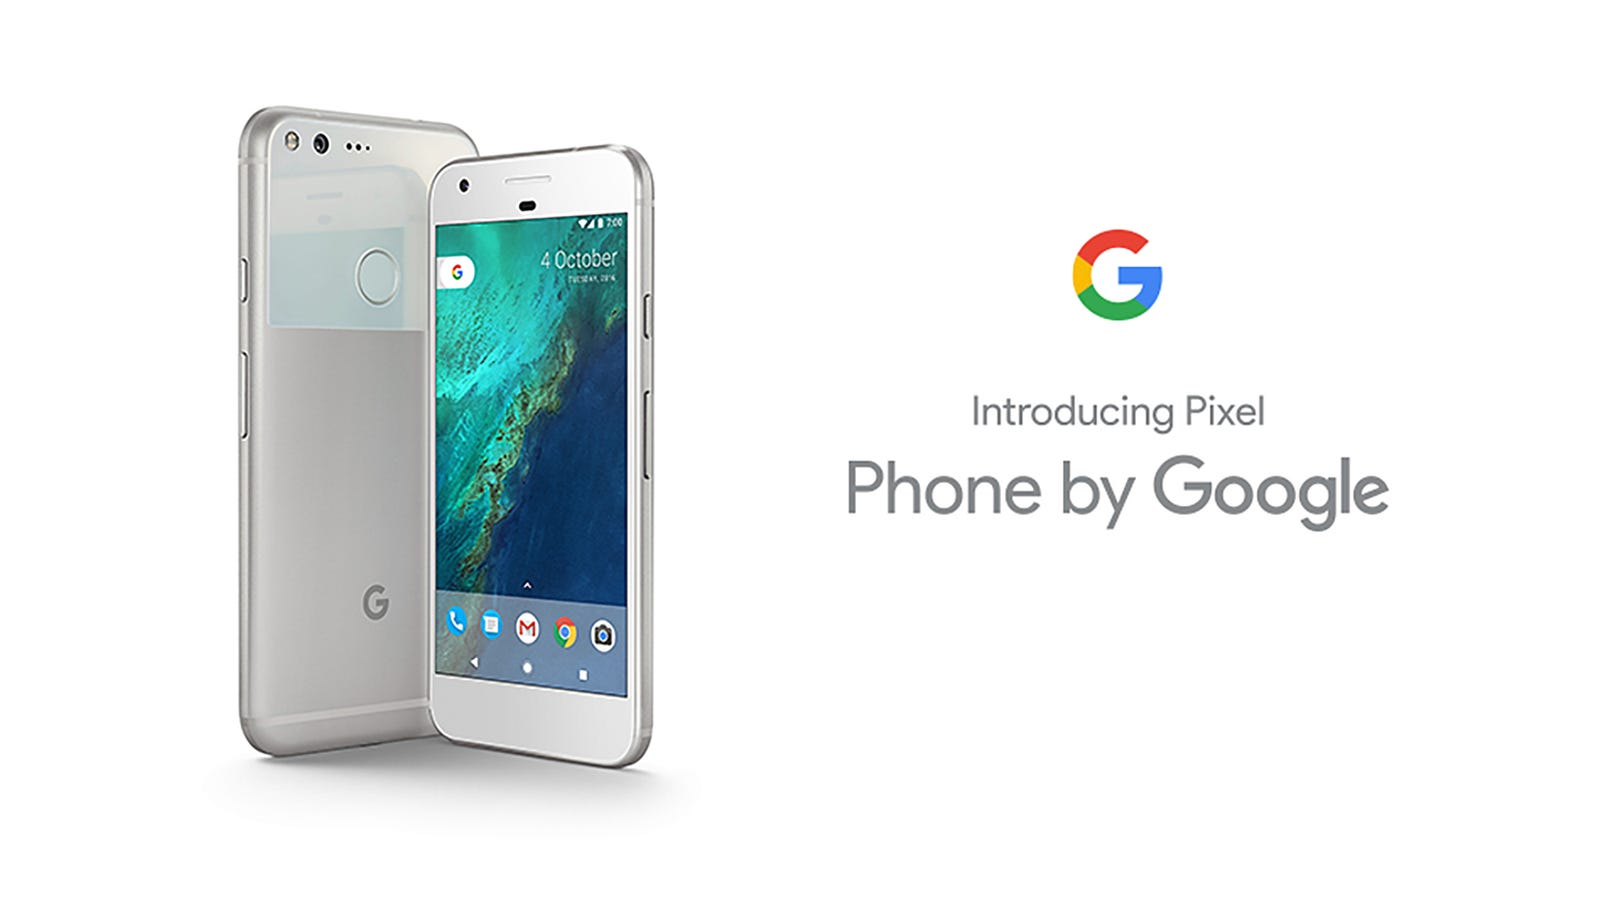 Google aimed to compete with Apple's popular iPhone by releasing the definitive typical smartphone with all the standard features.